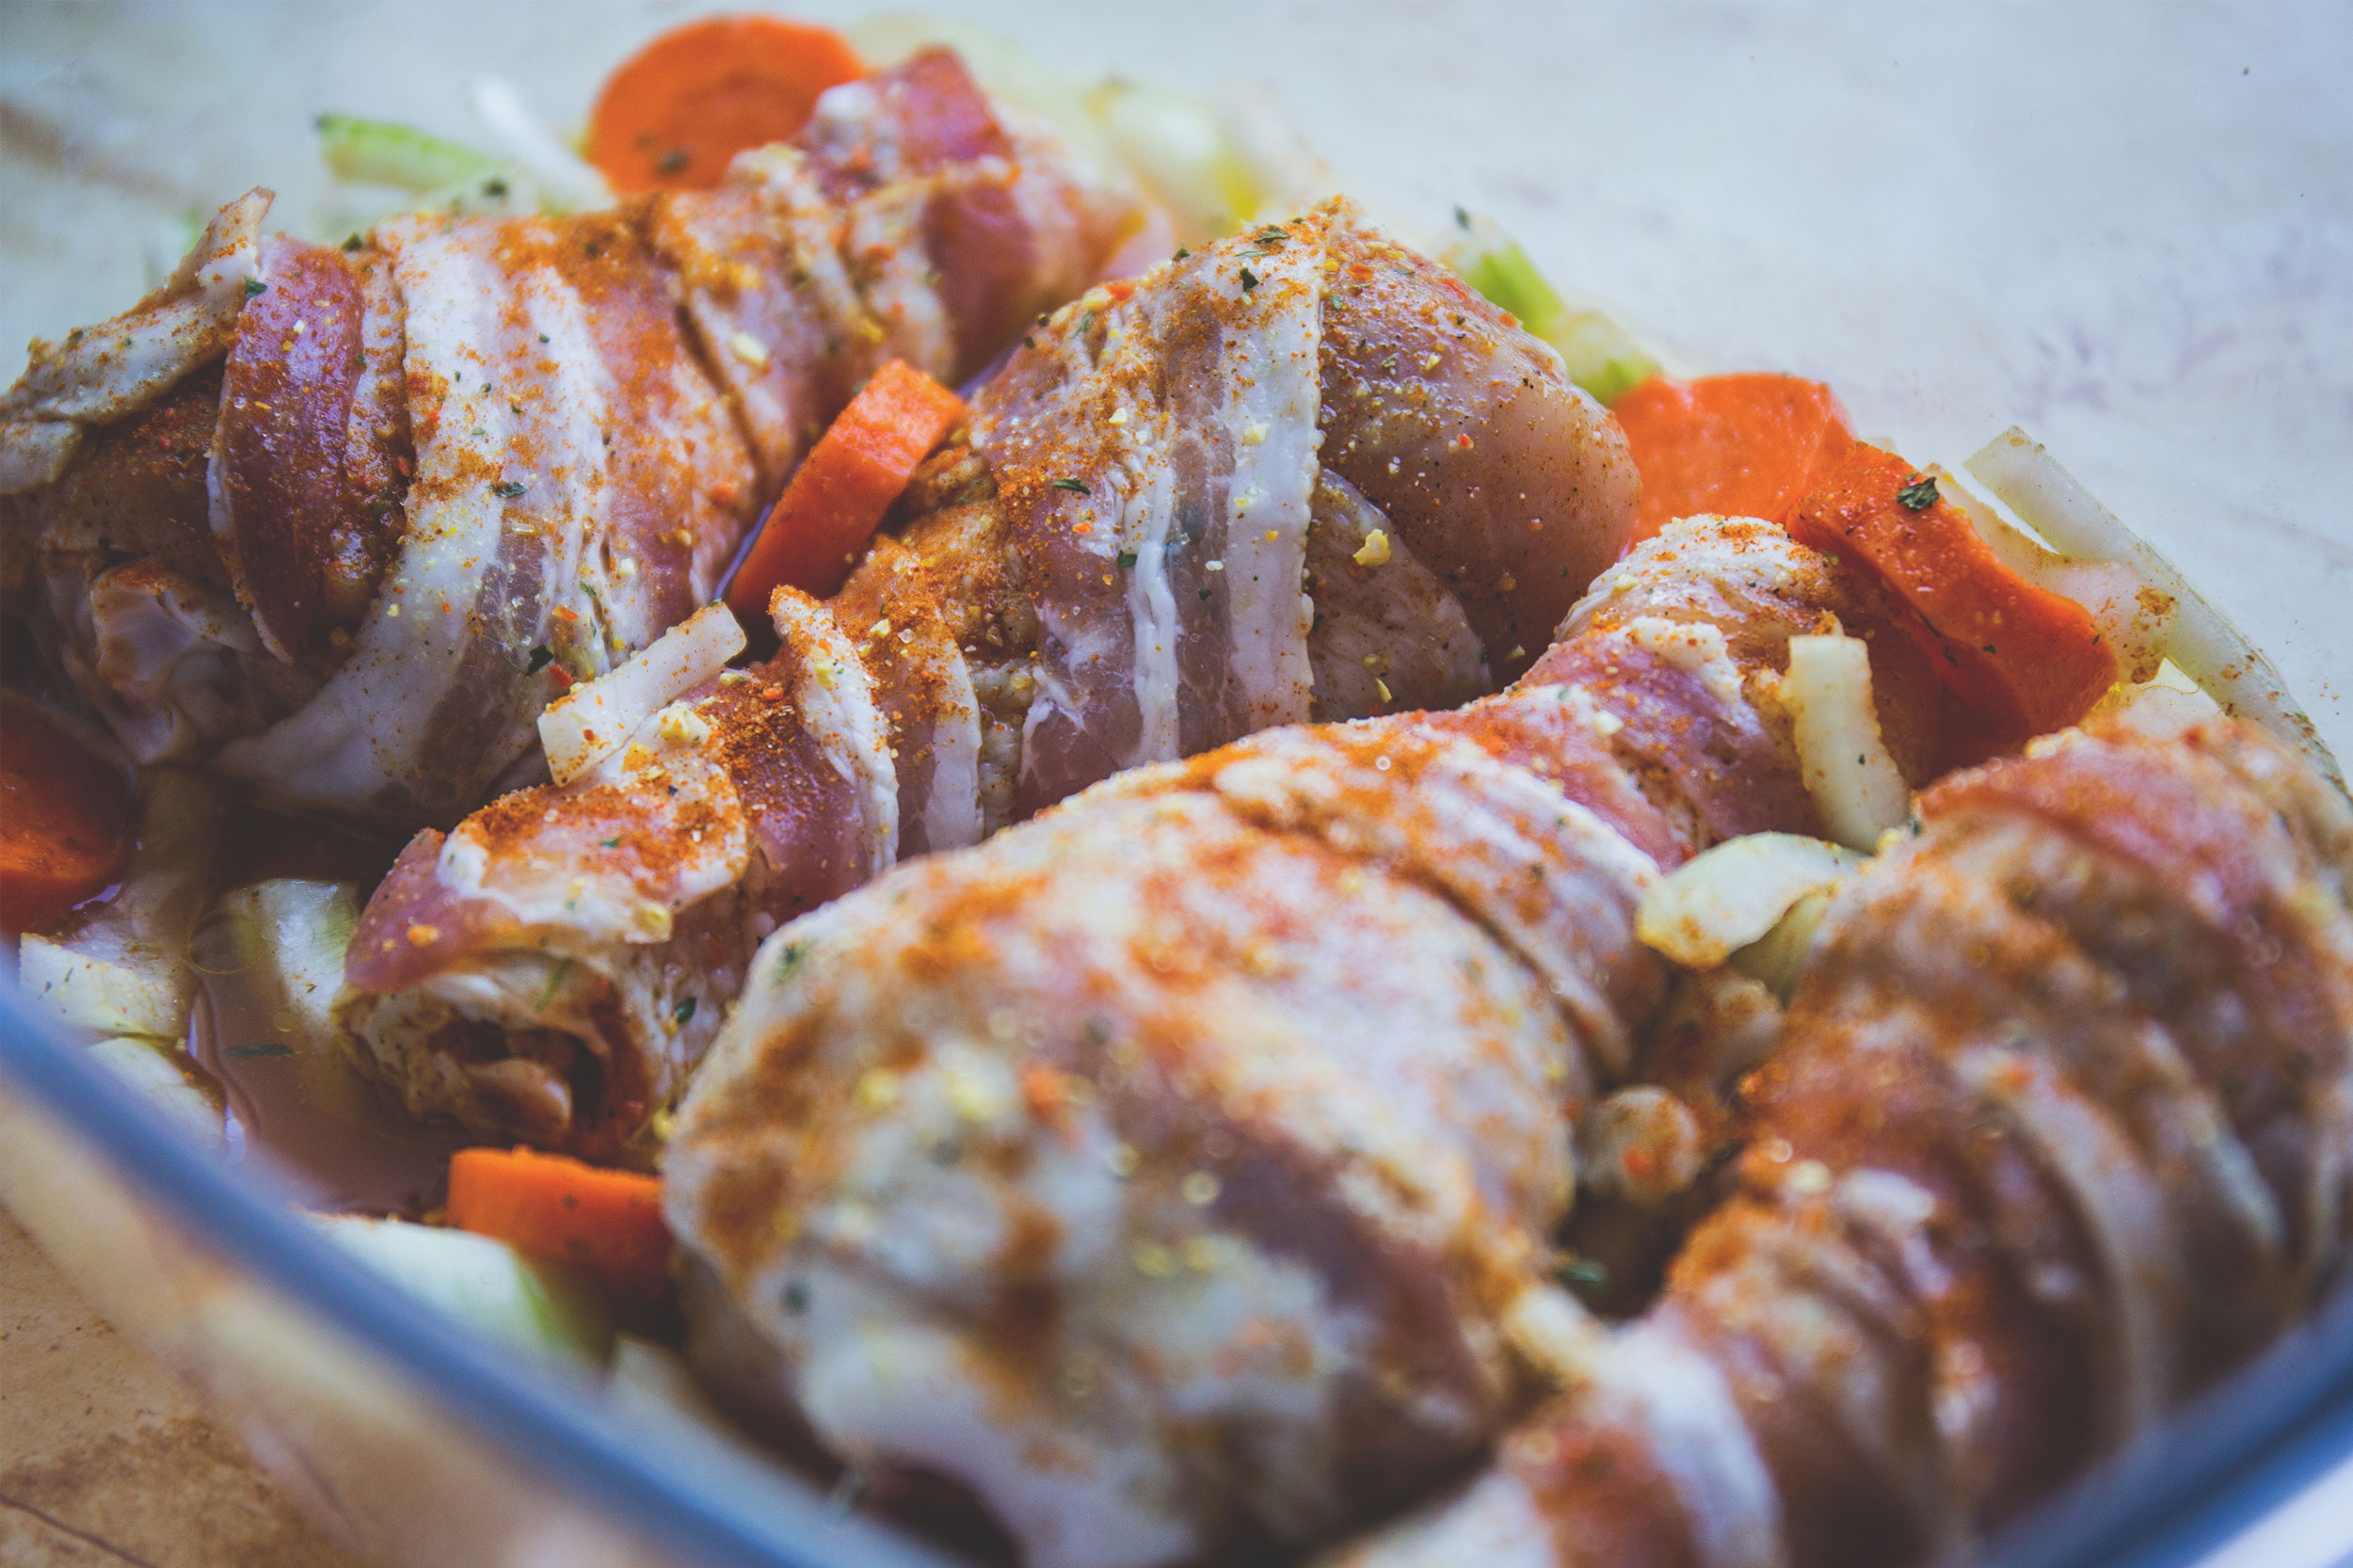 Marios Italian Deli | Picture of Bacon-Wrapped Drumsticks with Vegetables